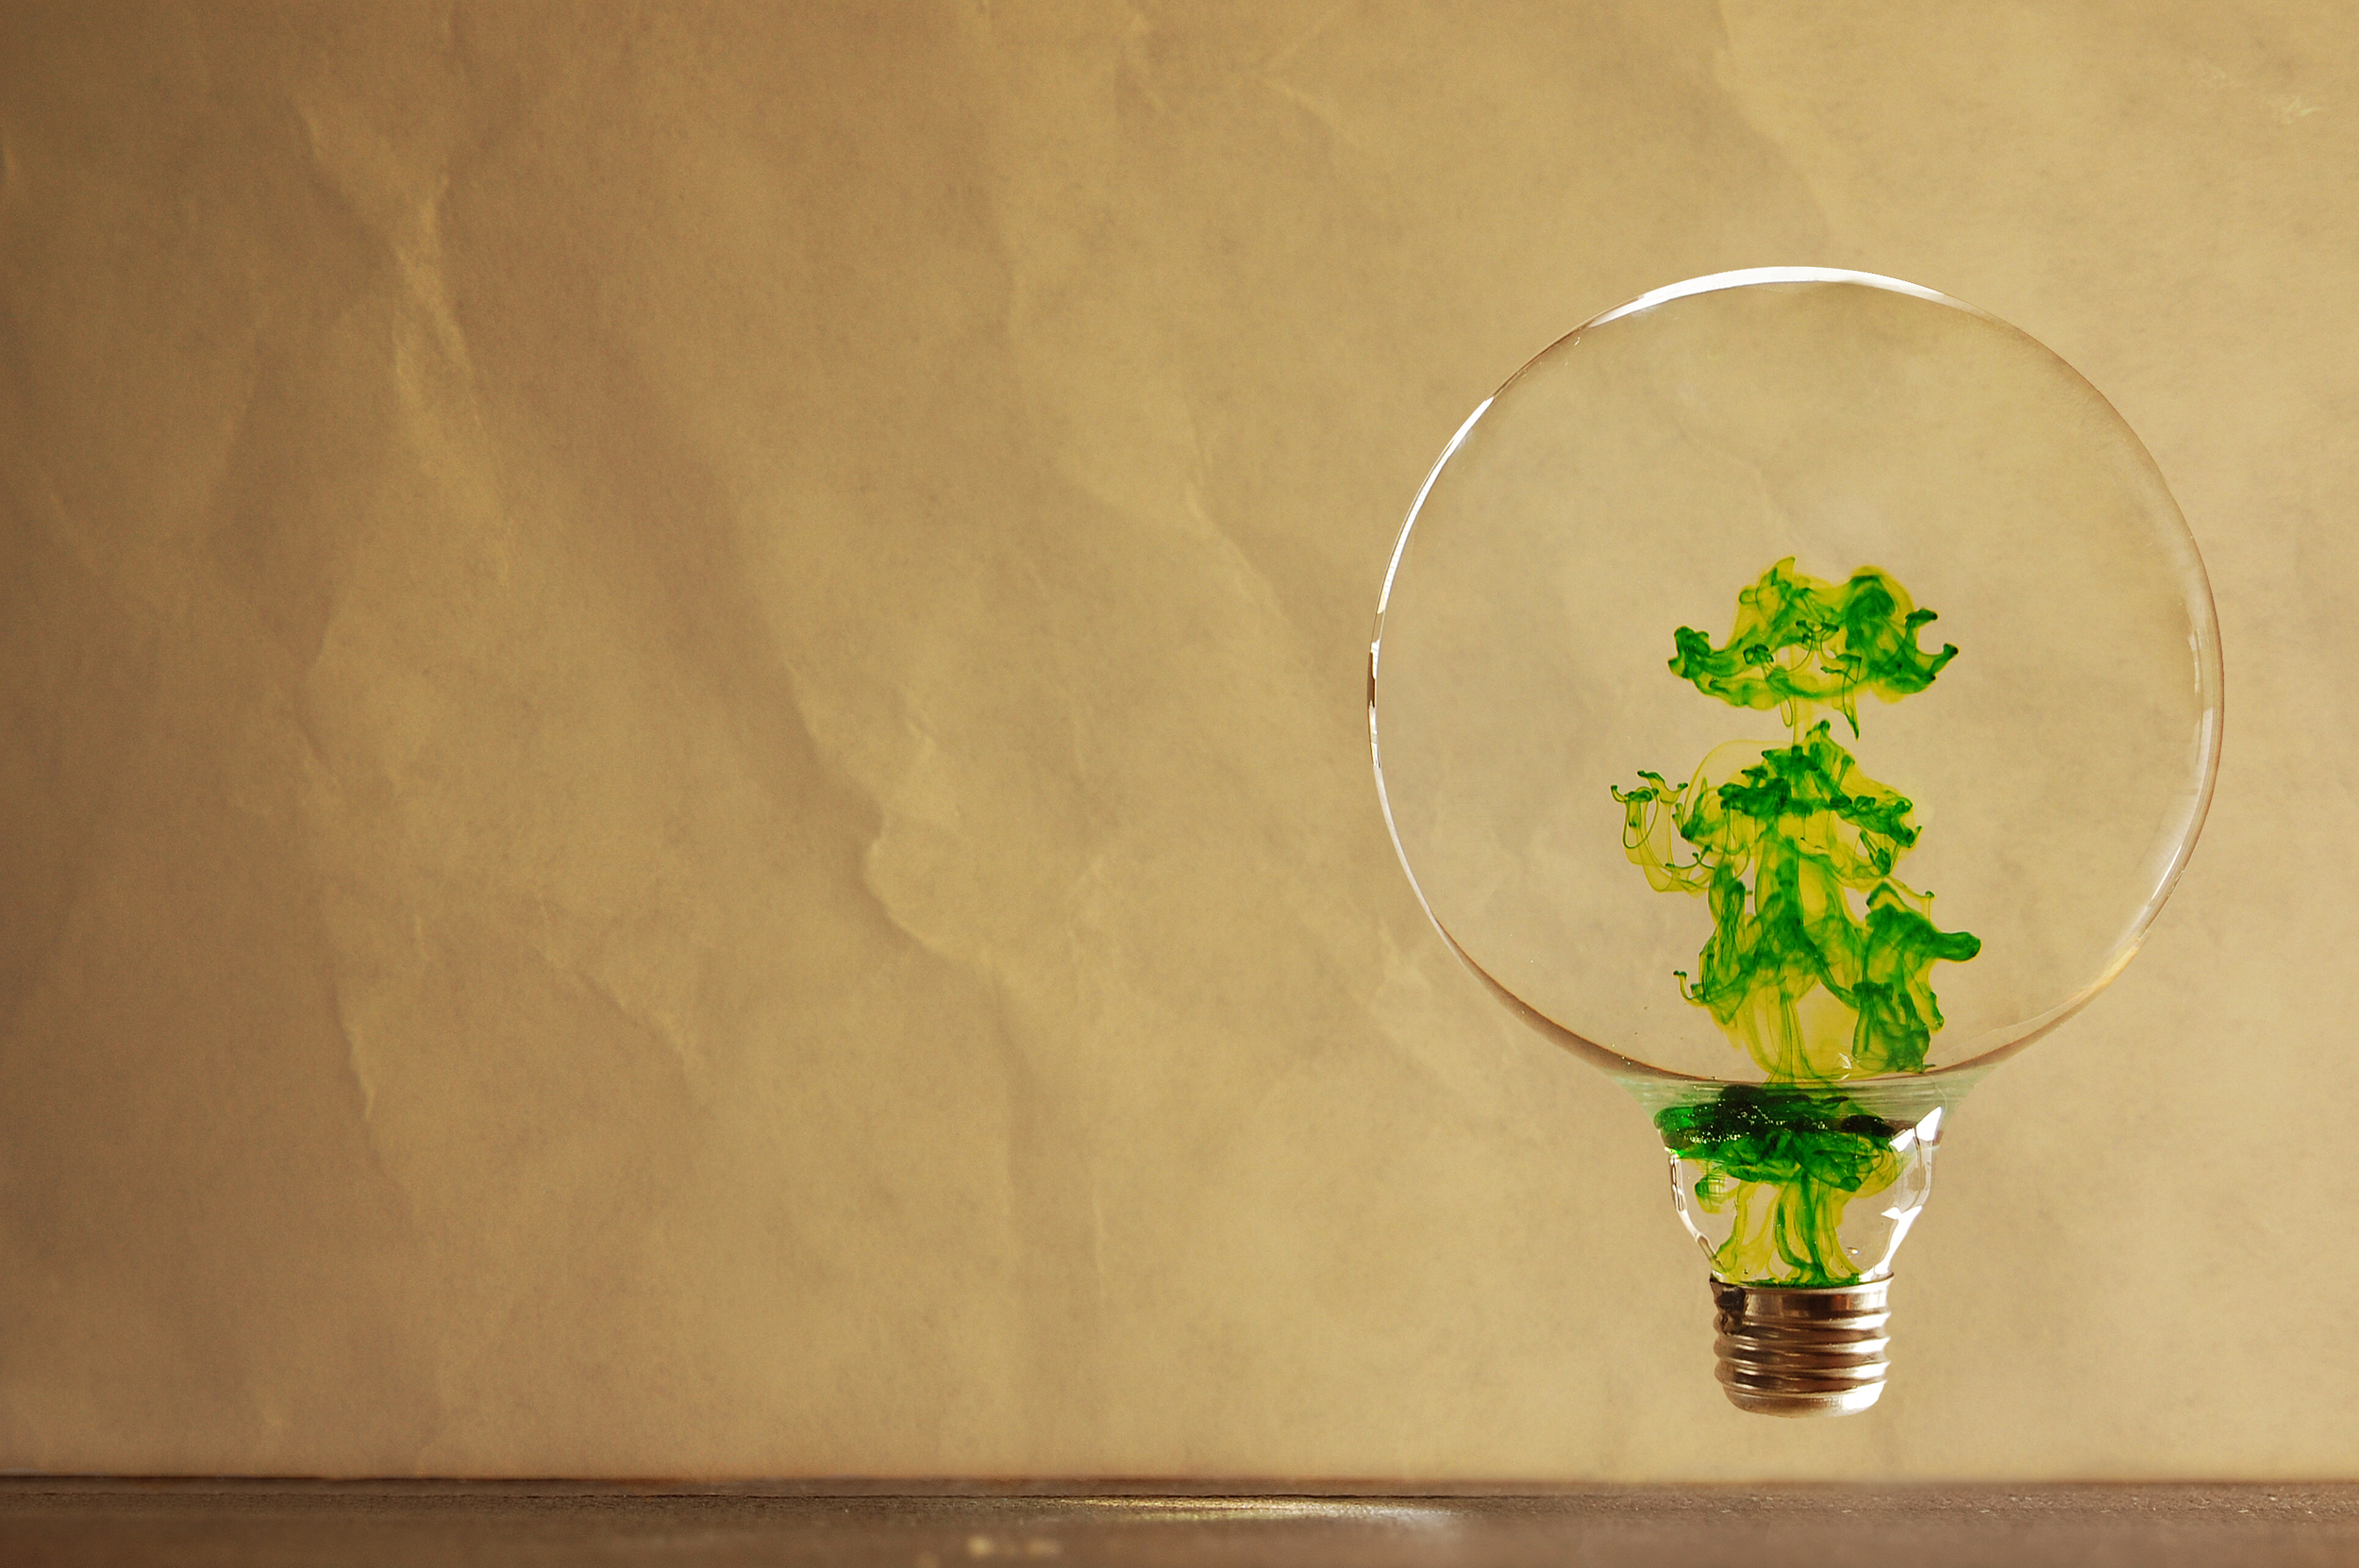 Food coloring defies gravity in a water-filled lightbulb